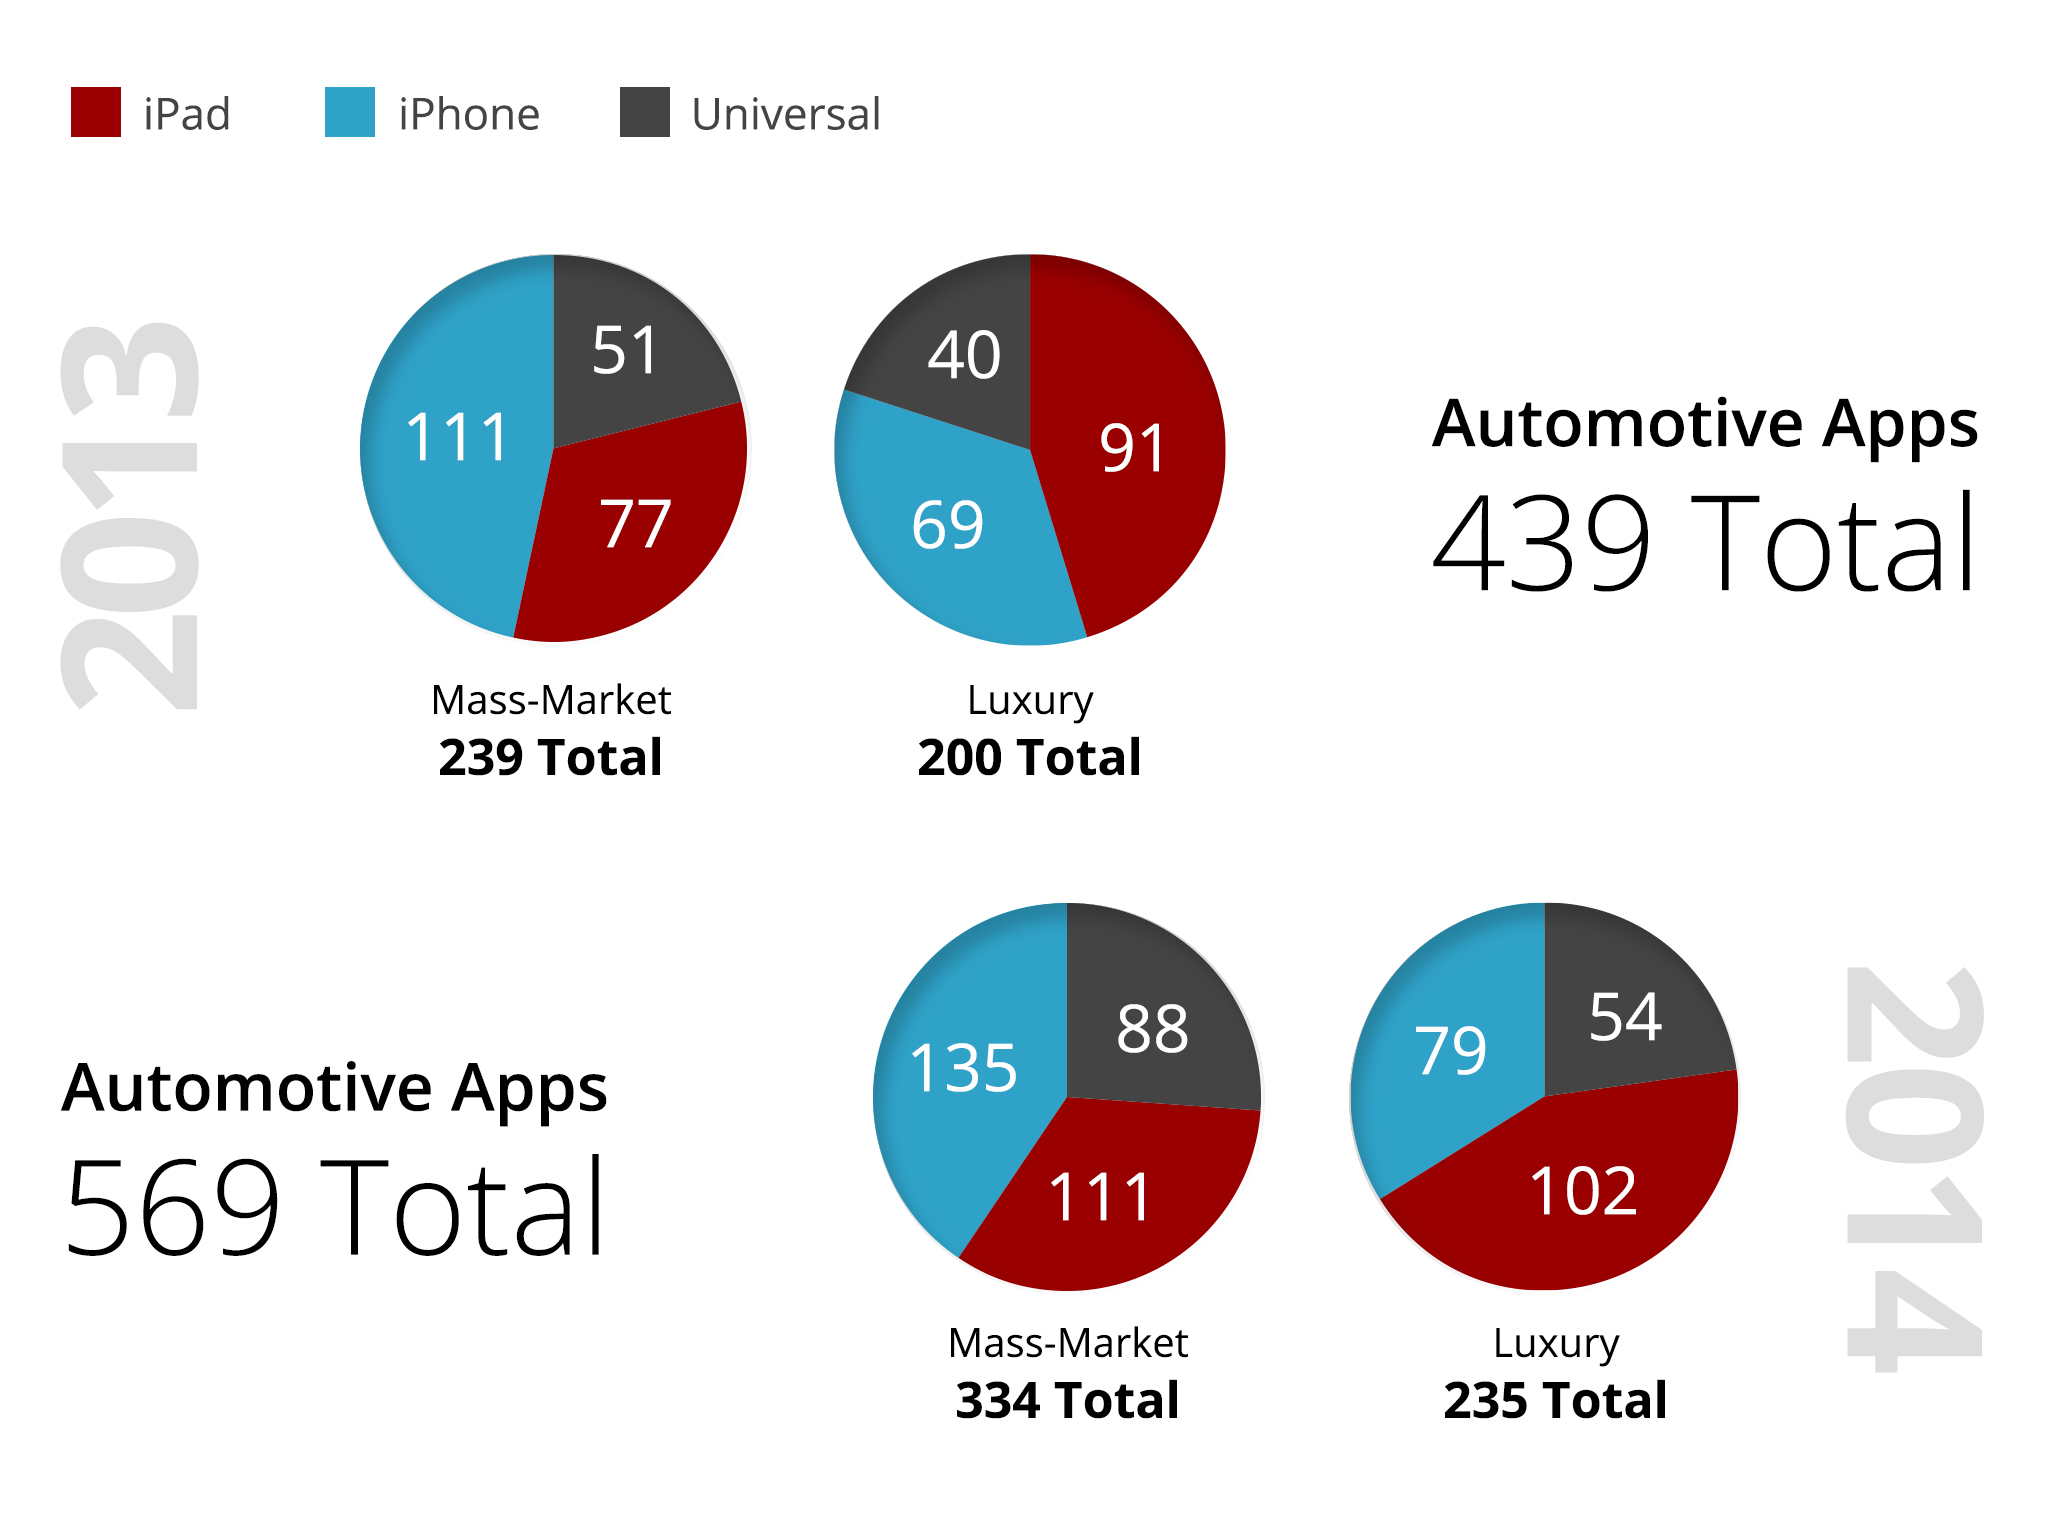 YEAR-OVER-YEAR The total number of automotive apps increased 30% from 2013,